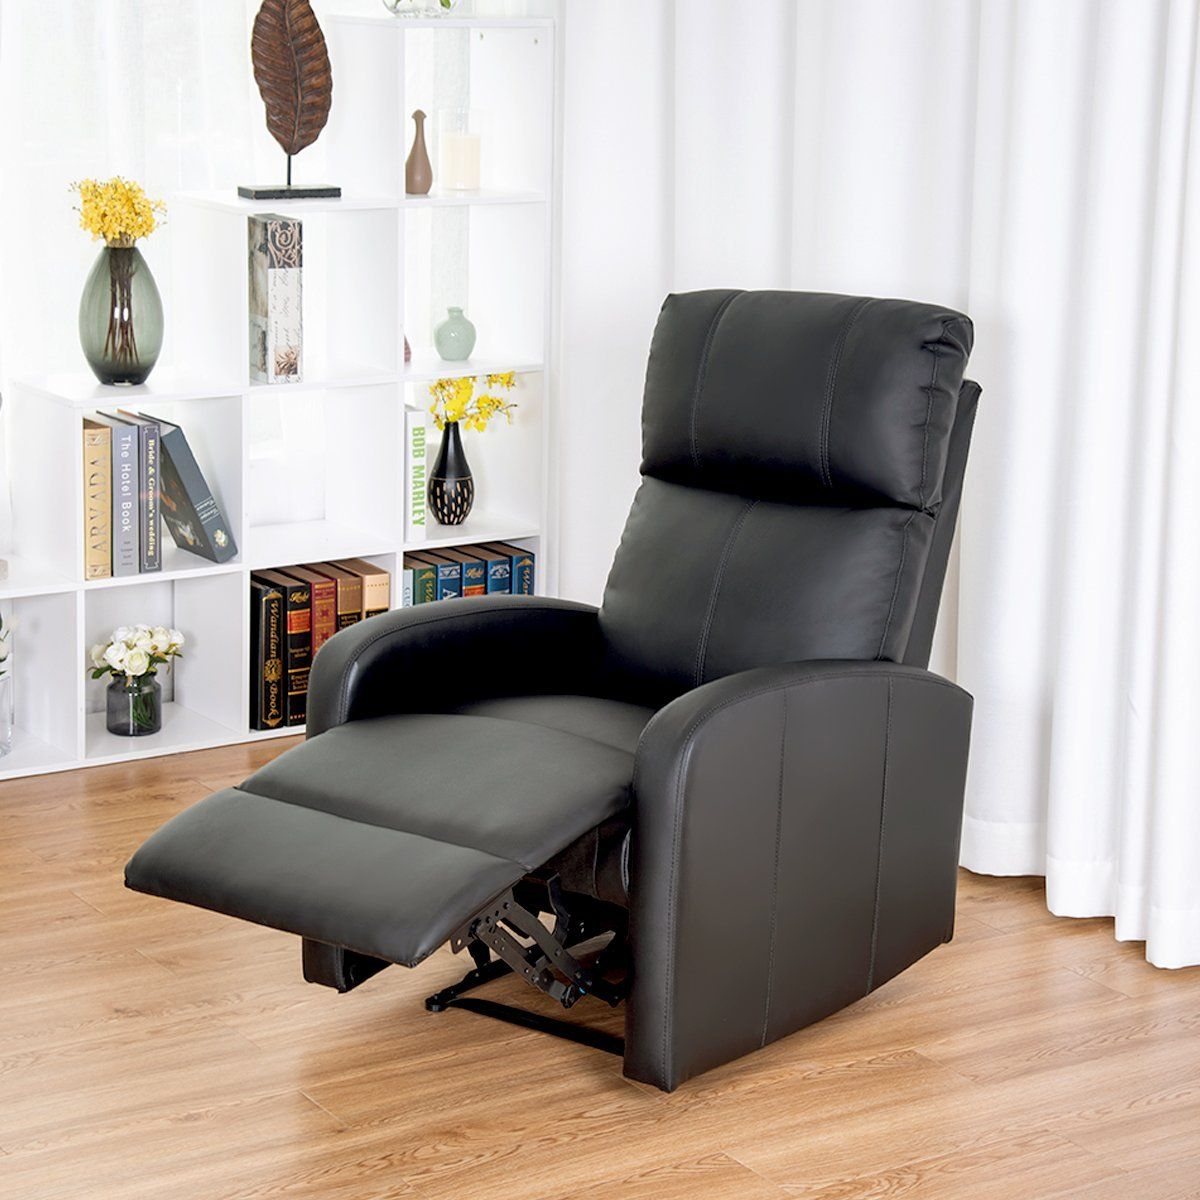 Giantex Modern Leather Recliner Chair Pushback Single Padded